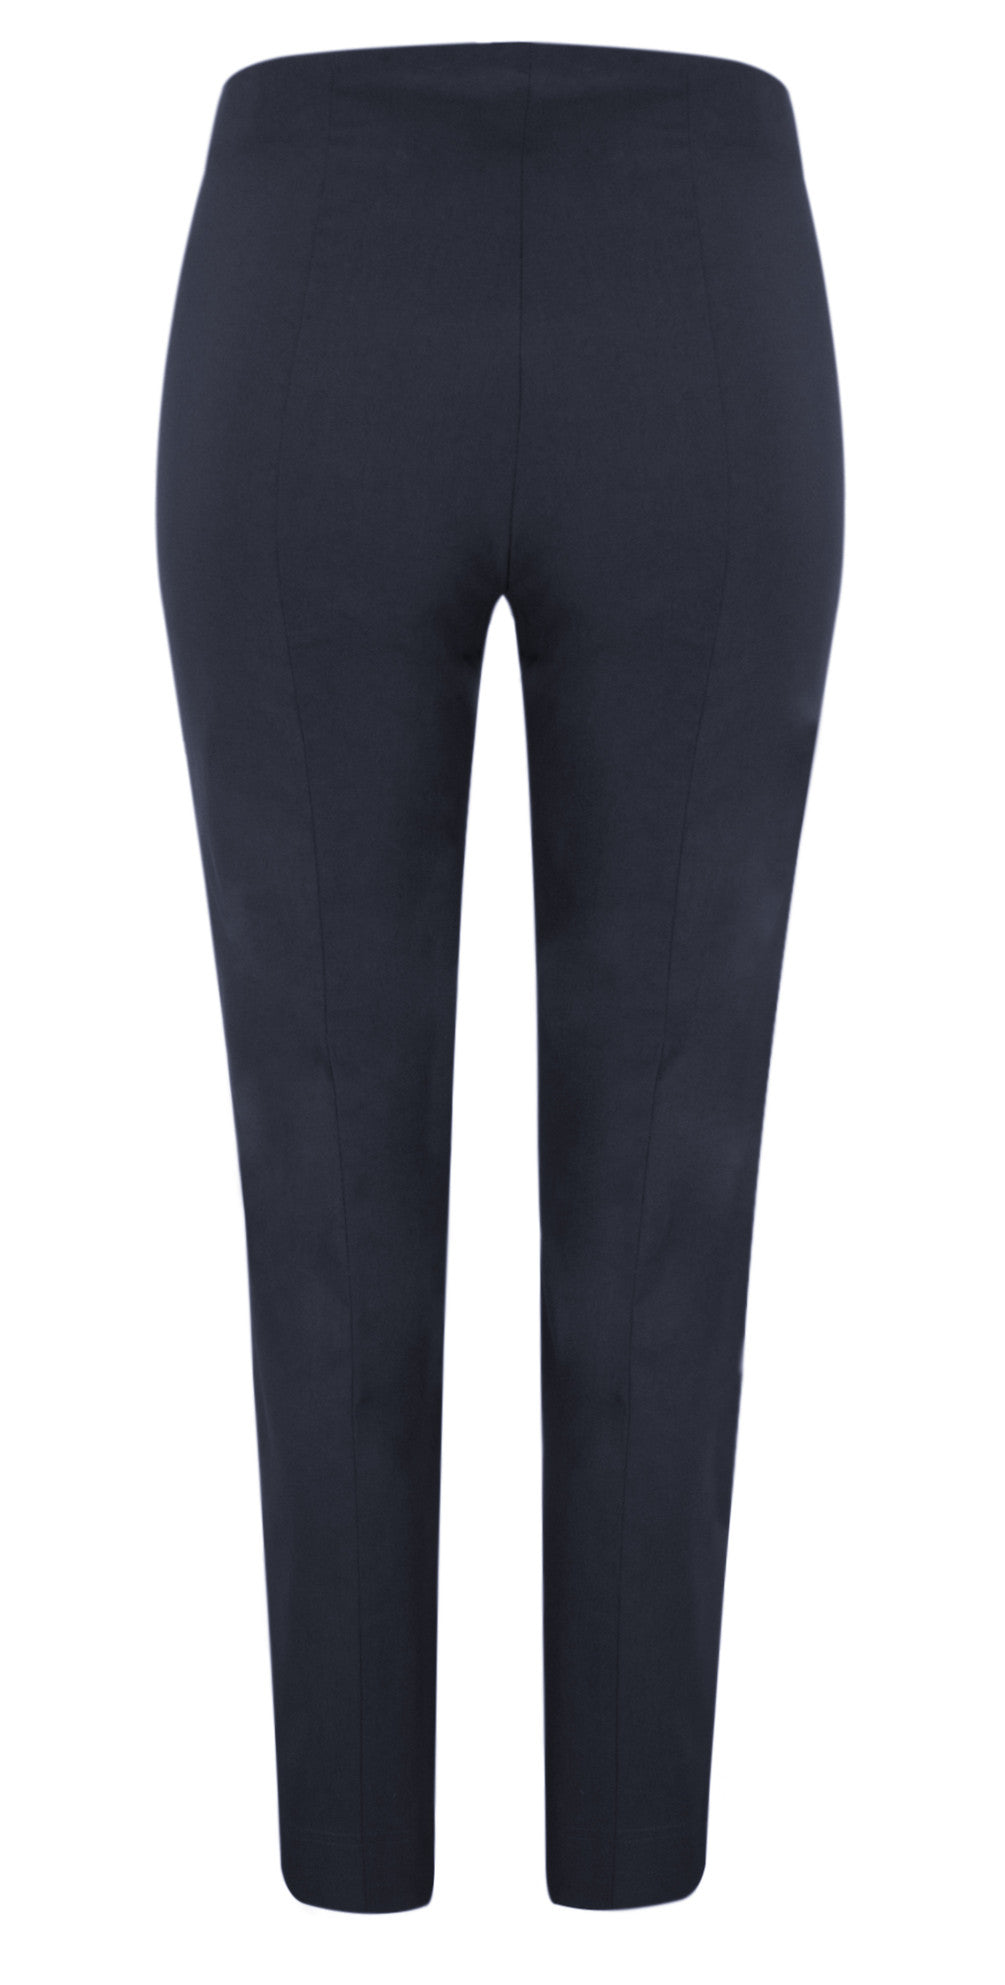 Robell Marie Full Length Trousers for Ladies in Dark Navy